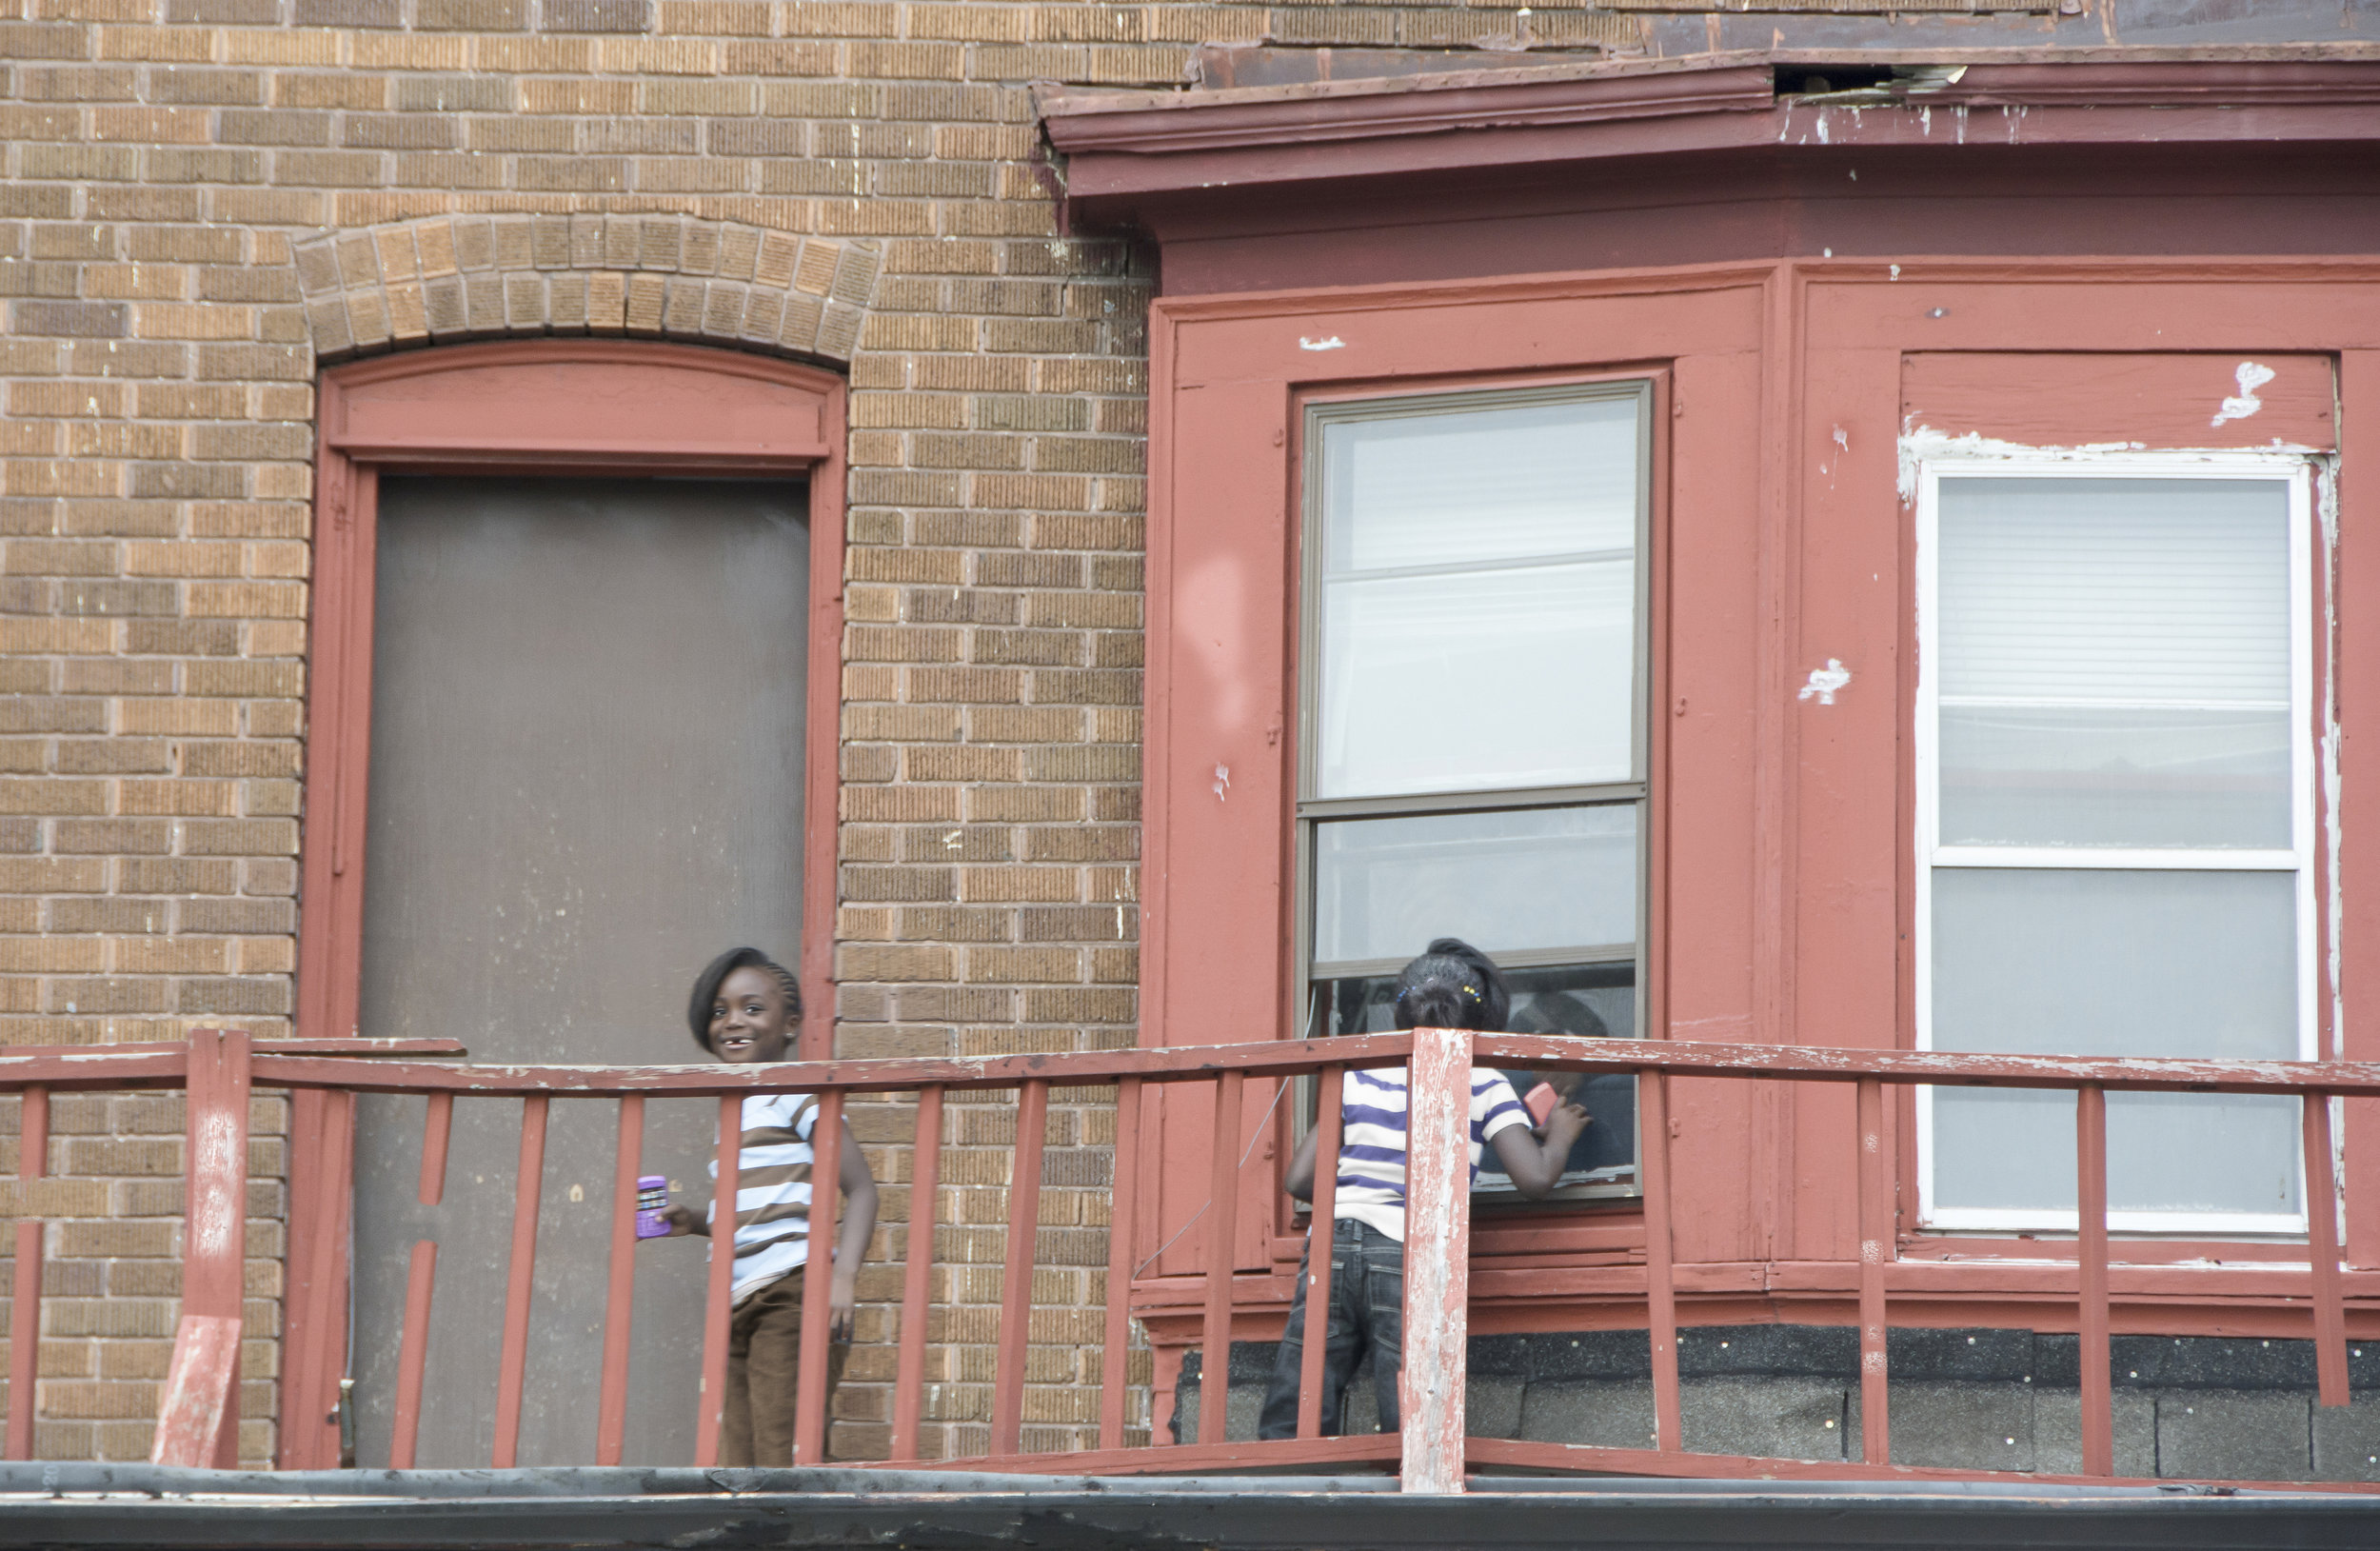 These little girls seemed to confine their playtime from upstairs porch and into apartment. It's a two story drop to the street. There is no lawn.